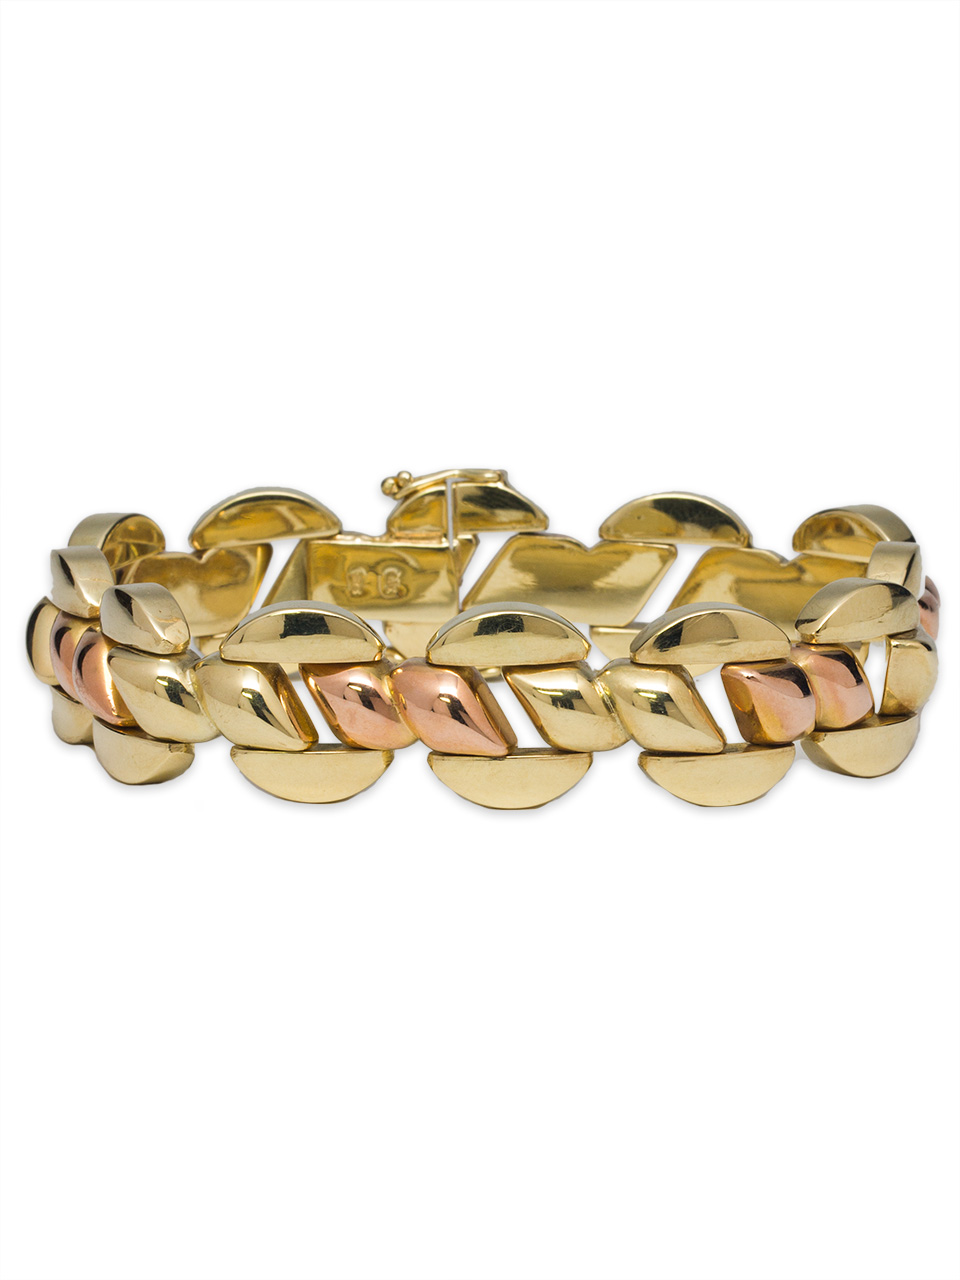 Retro Bracelet 14K Yellow & Rose Gold circa 1940's